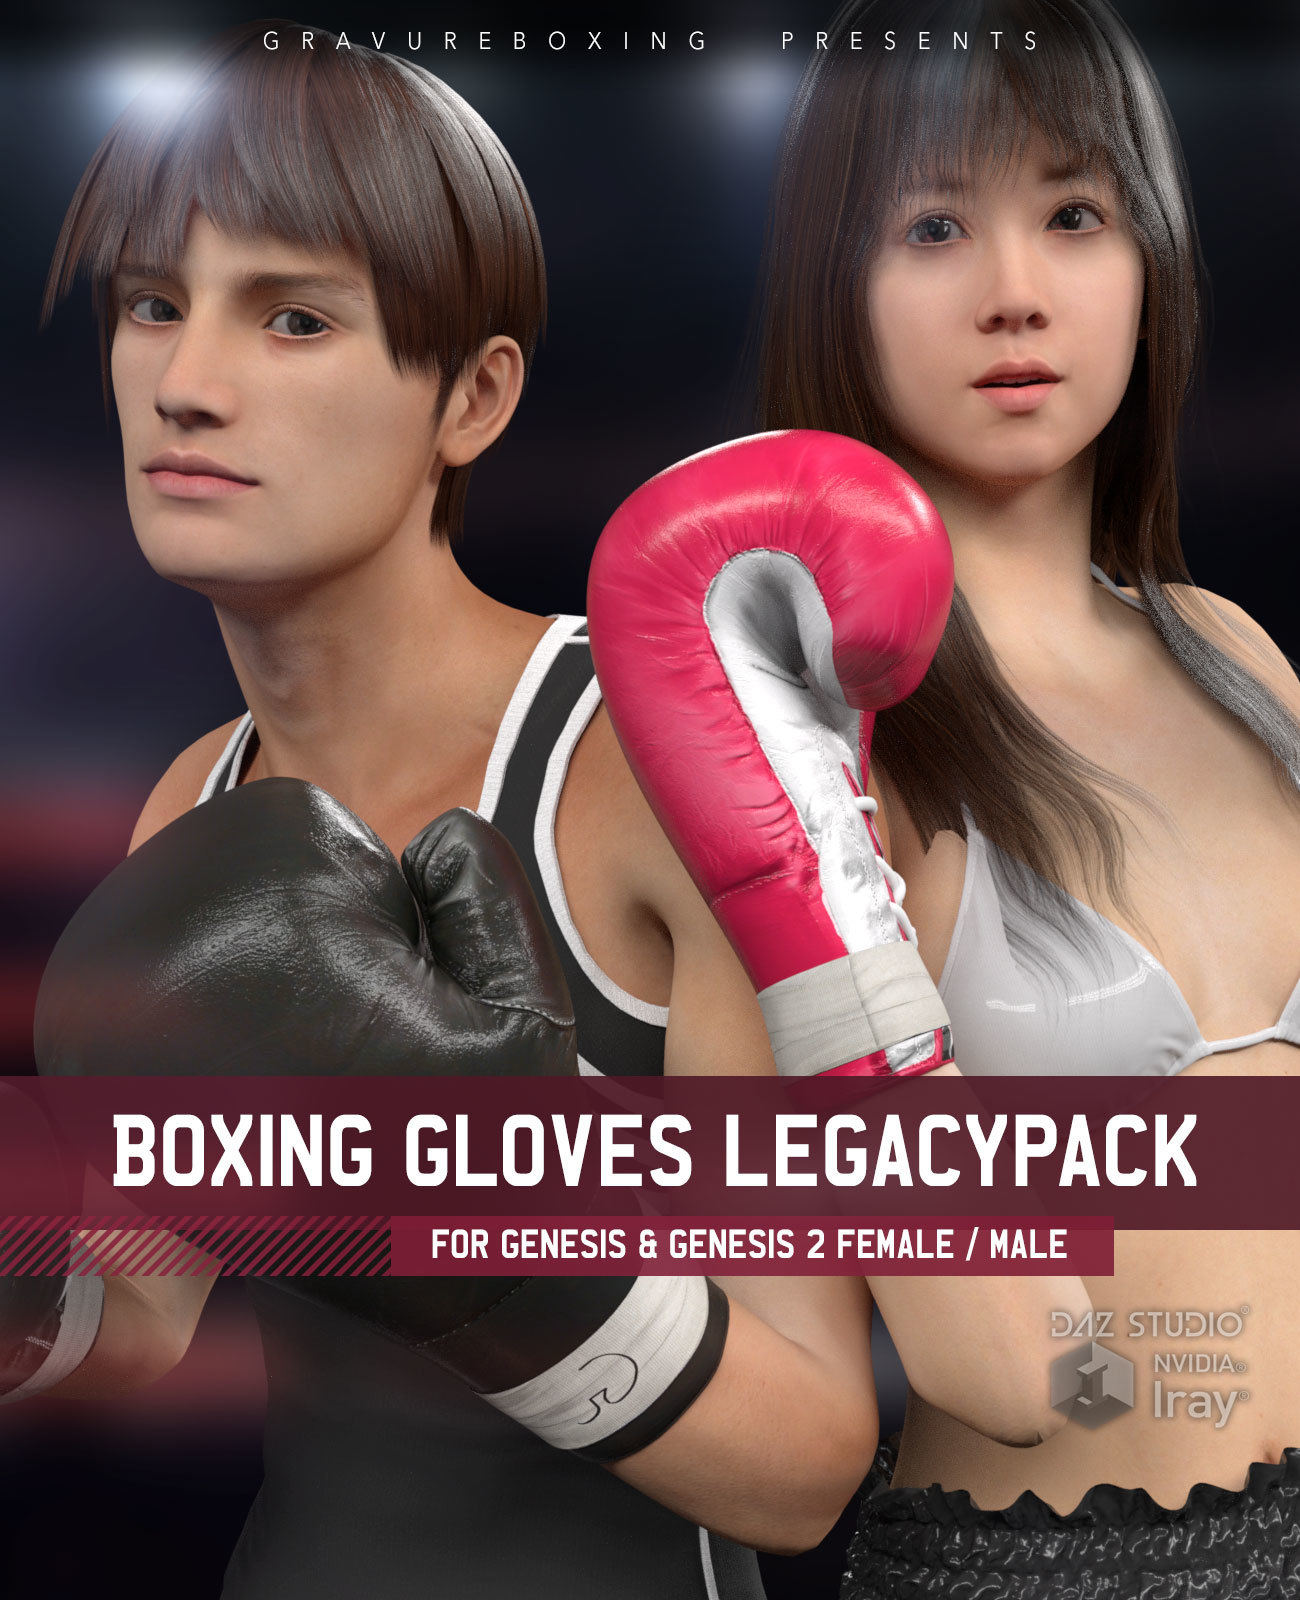 Boxing Gloves LegacyPack for Genesis 1 and Genesis 2 Female and Male